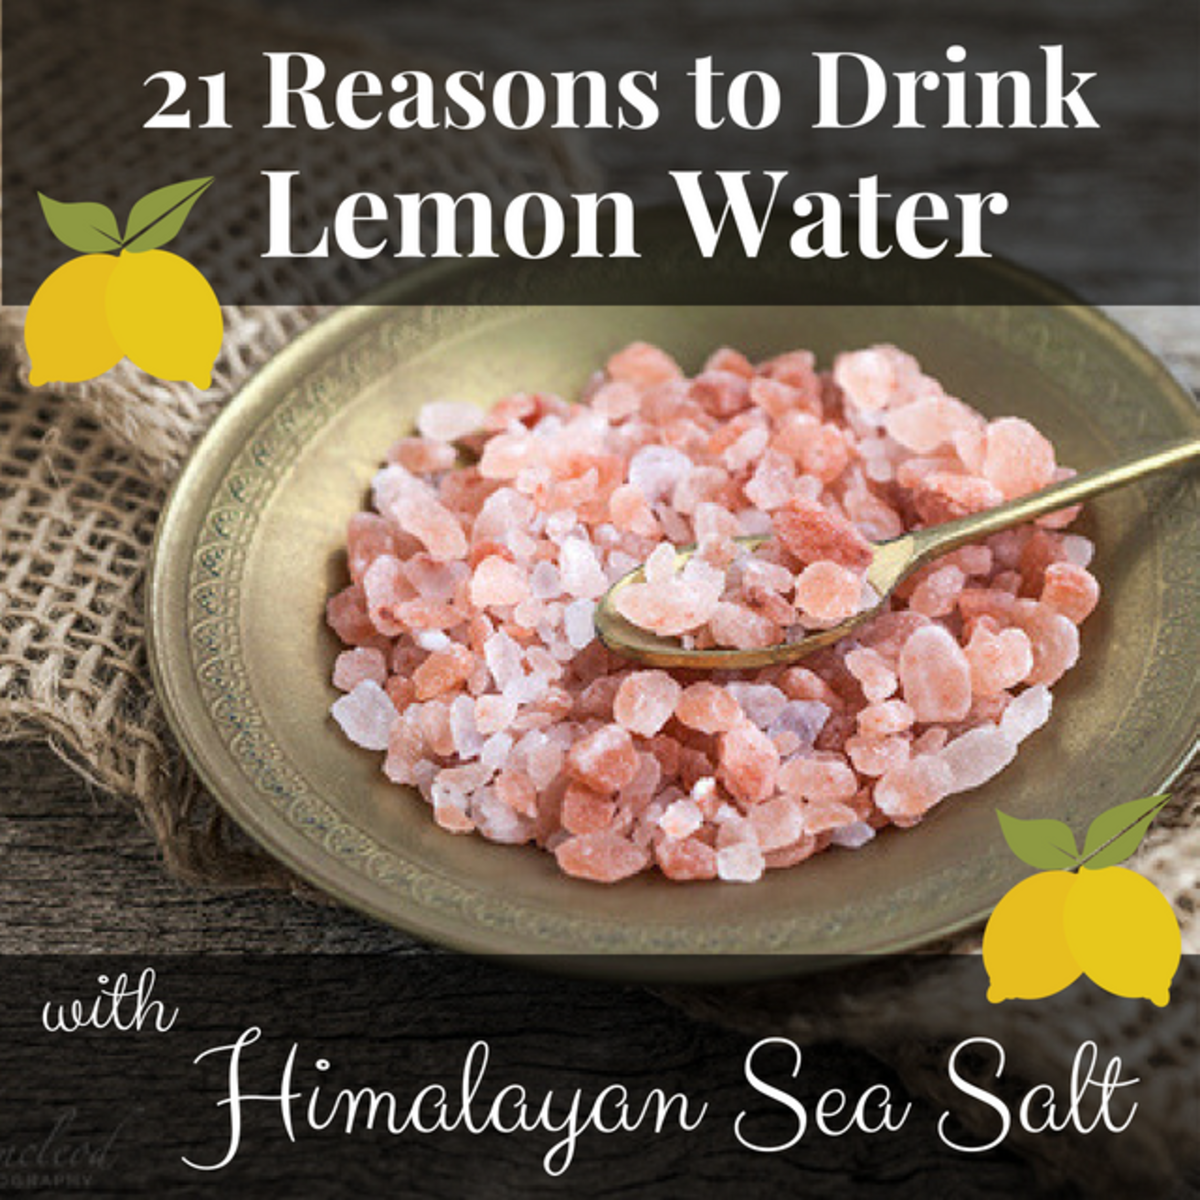 21 Reasons To Drink Lemon Water With Himalayan Sea Salt Caloriebee